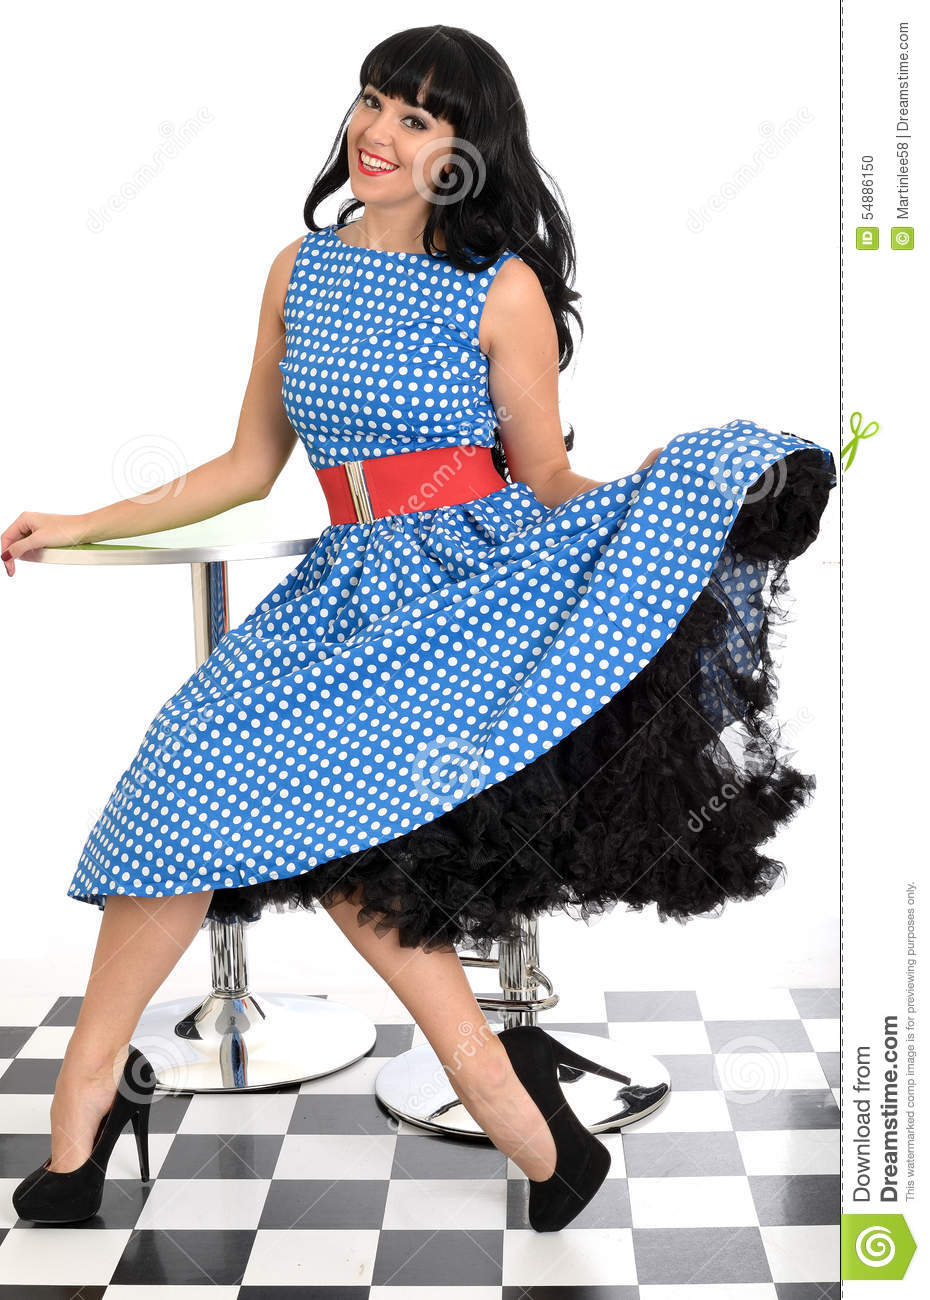 Polka Dot Dress With Red Shoes